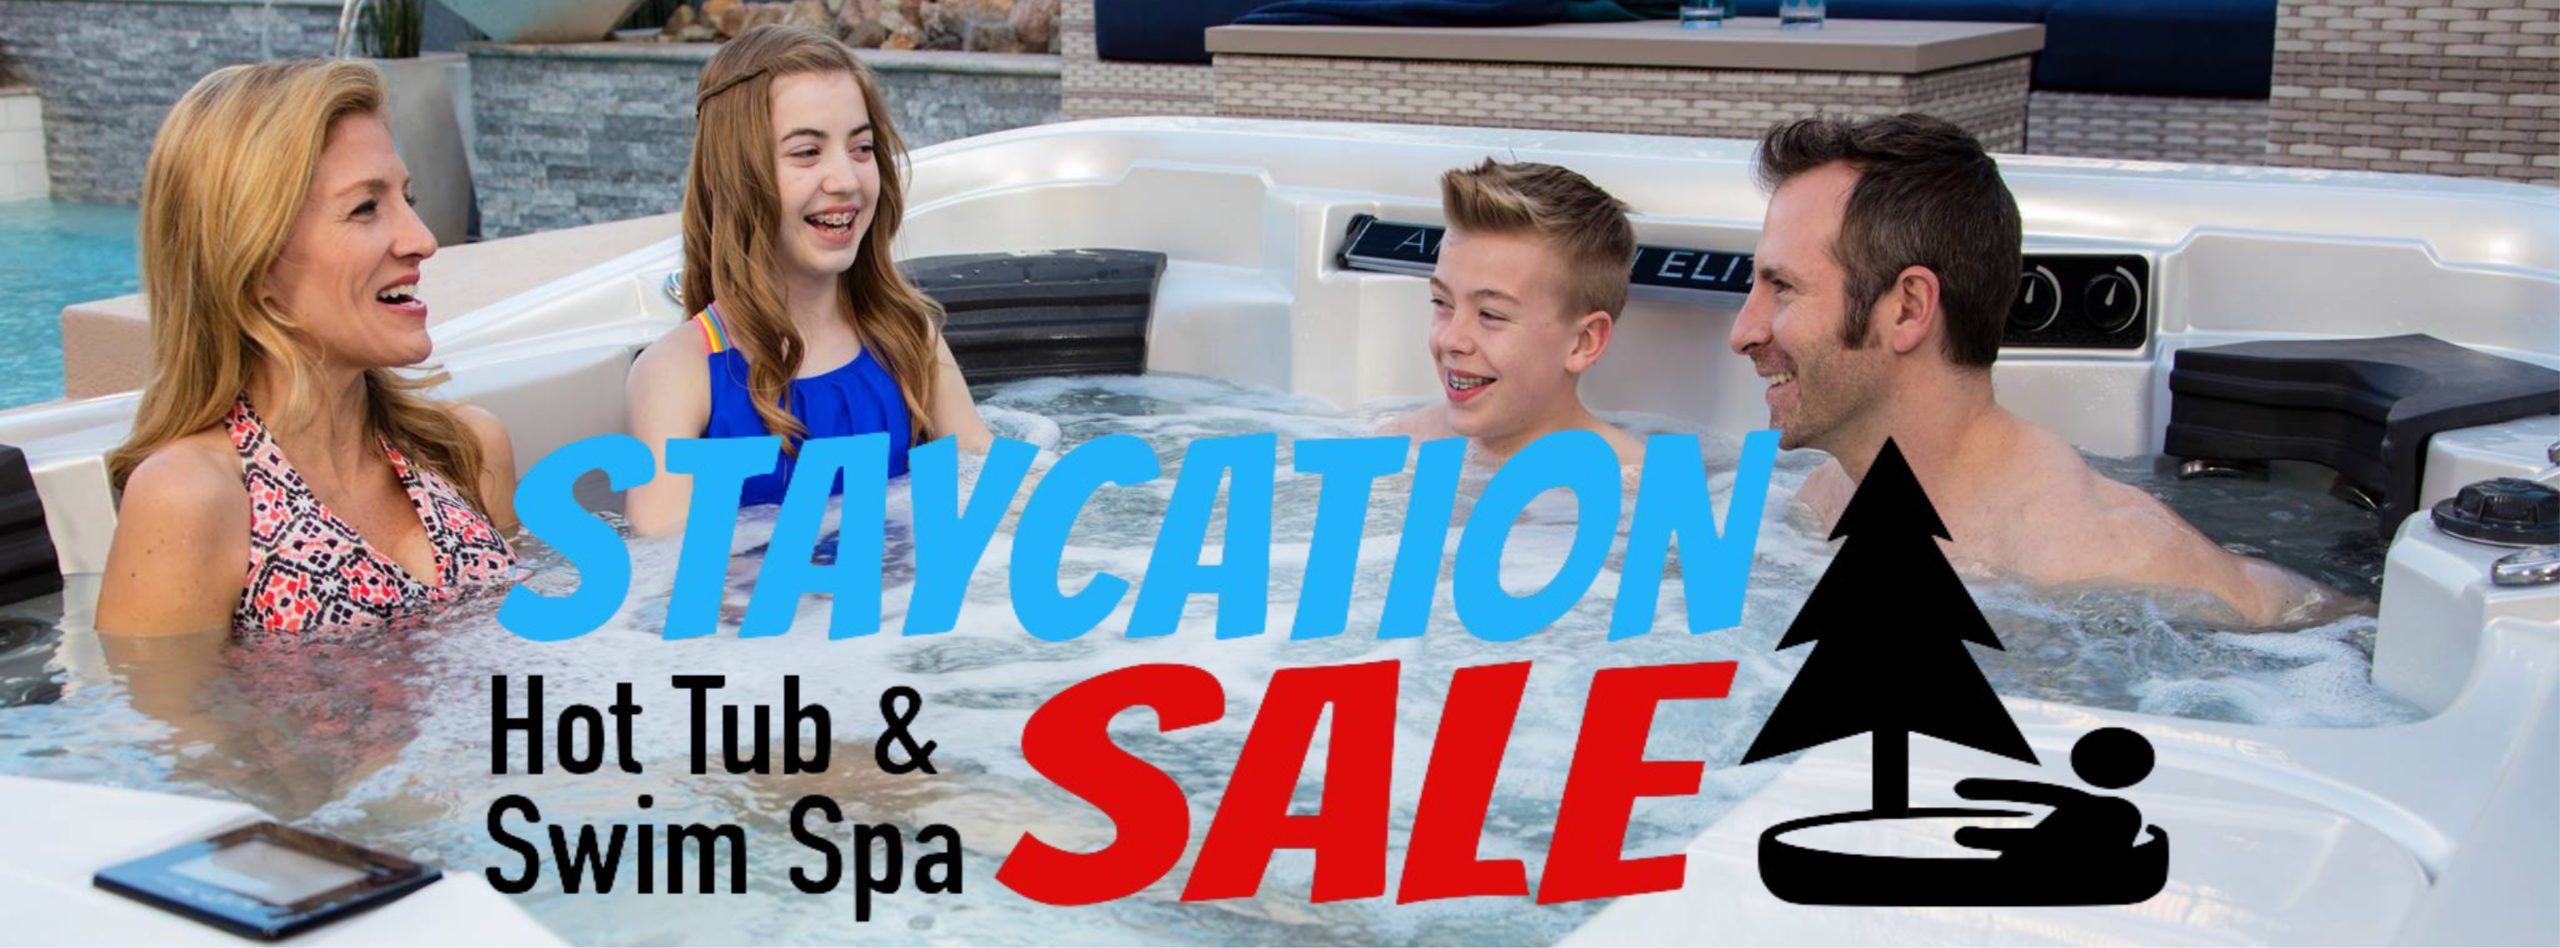 Blackpines-Staycation-Spa-Sale-Banner2